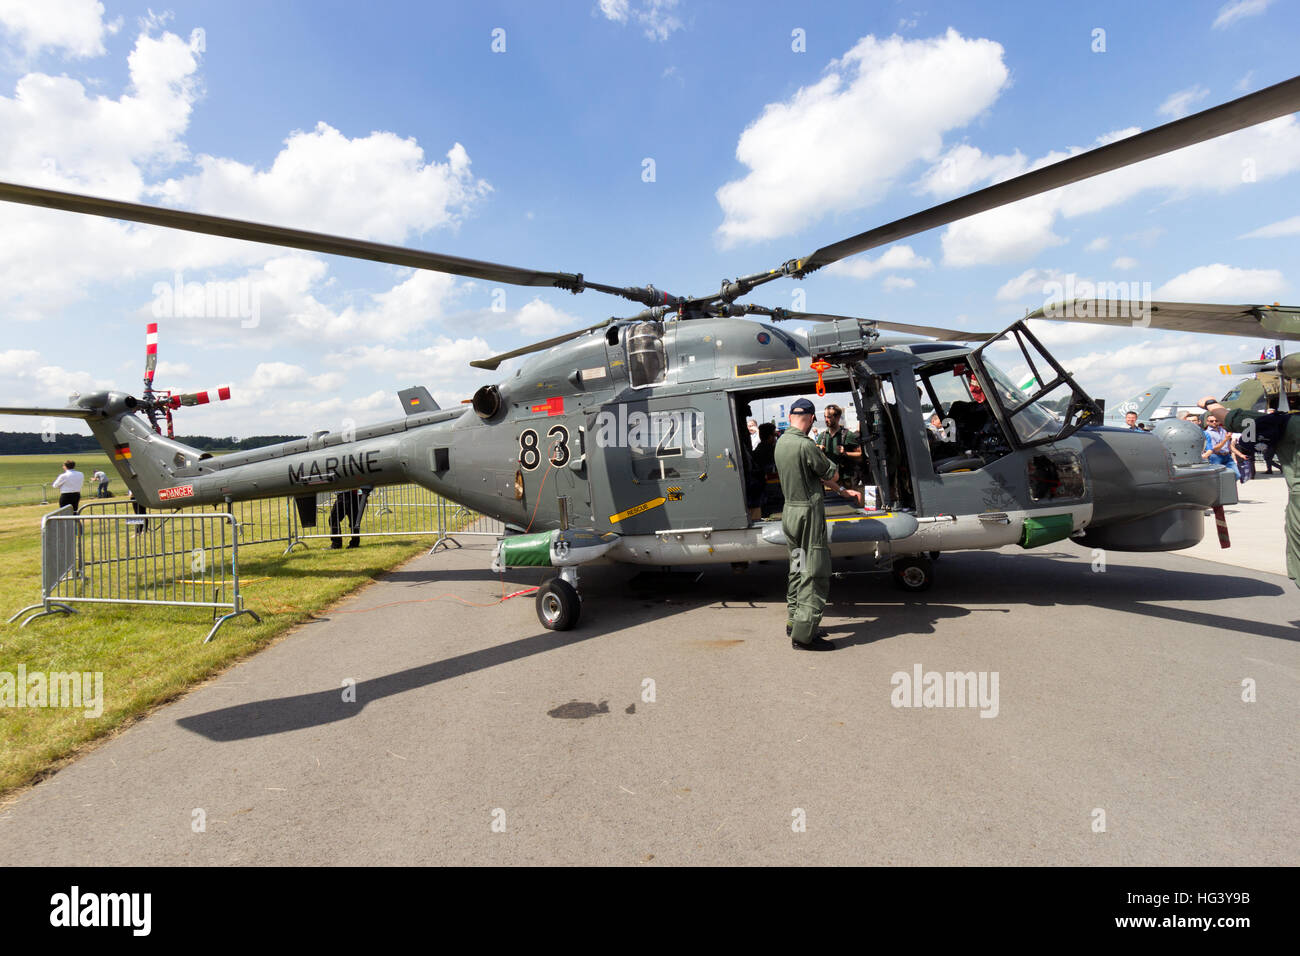 German Navy Westland Super Lynx on display at the ILA airshow at Berlin Schoneveld airport. - Stock Image